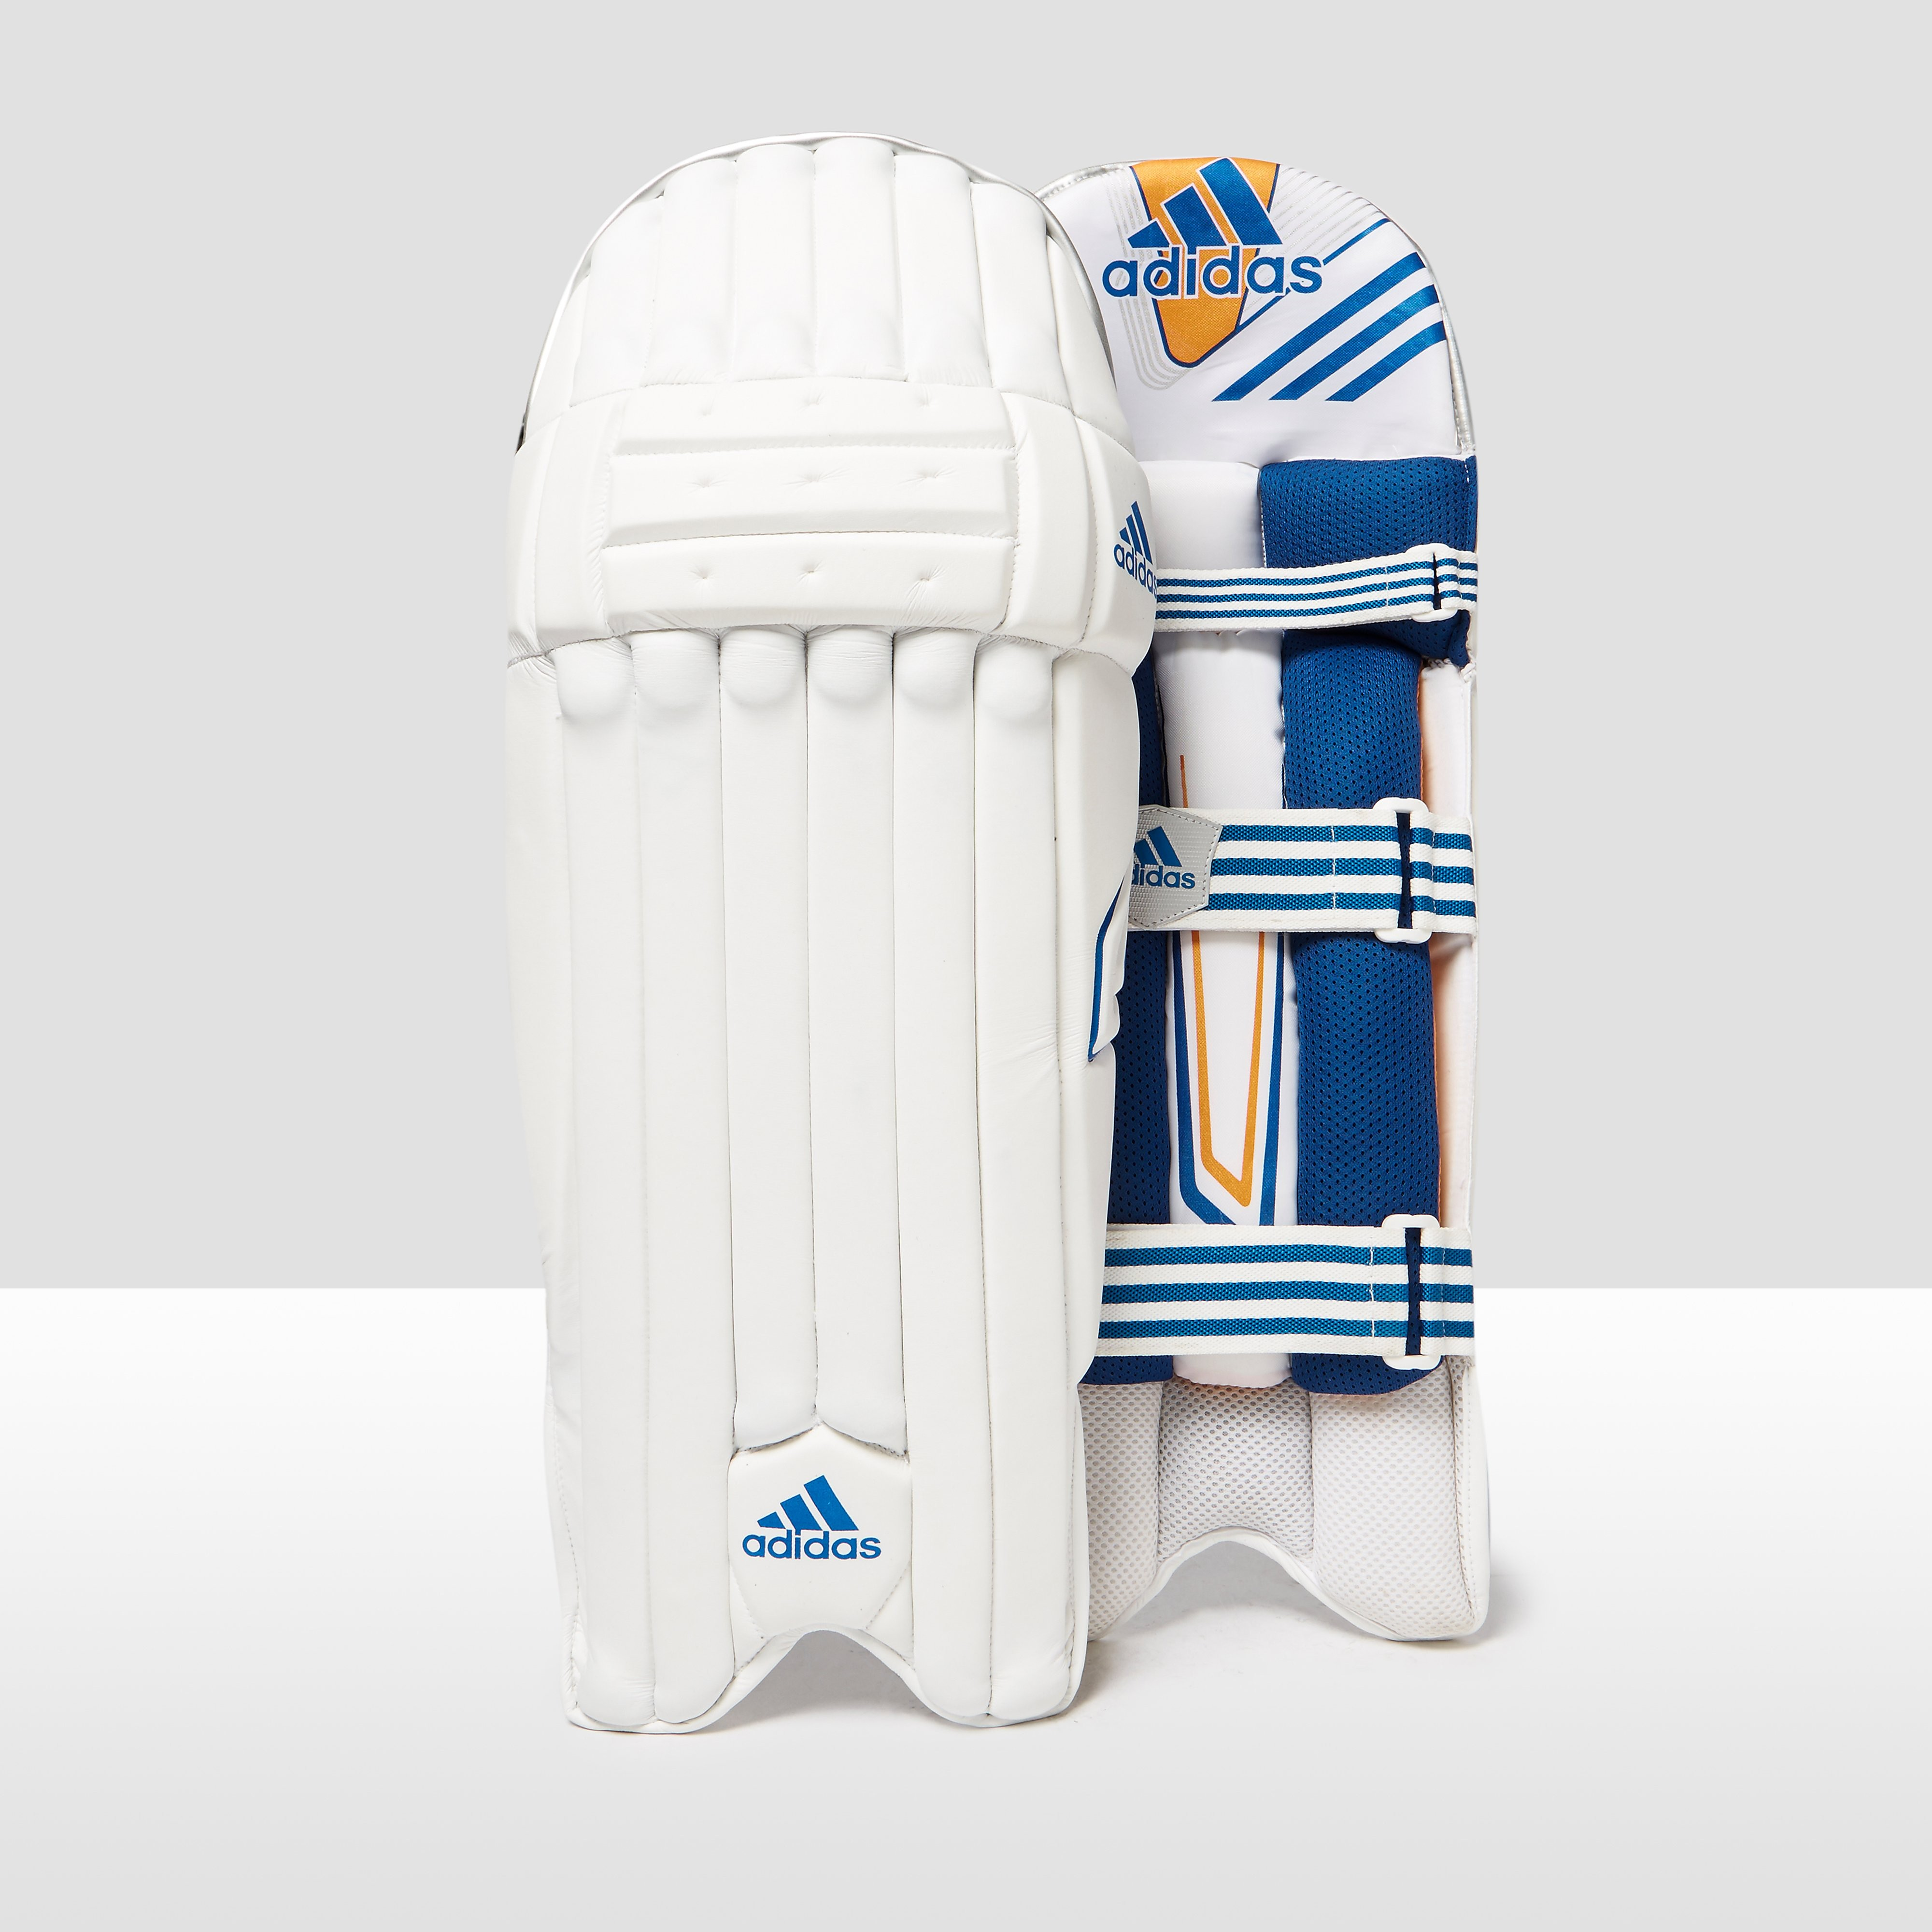 adidas CX11 BATTING Pads